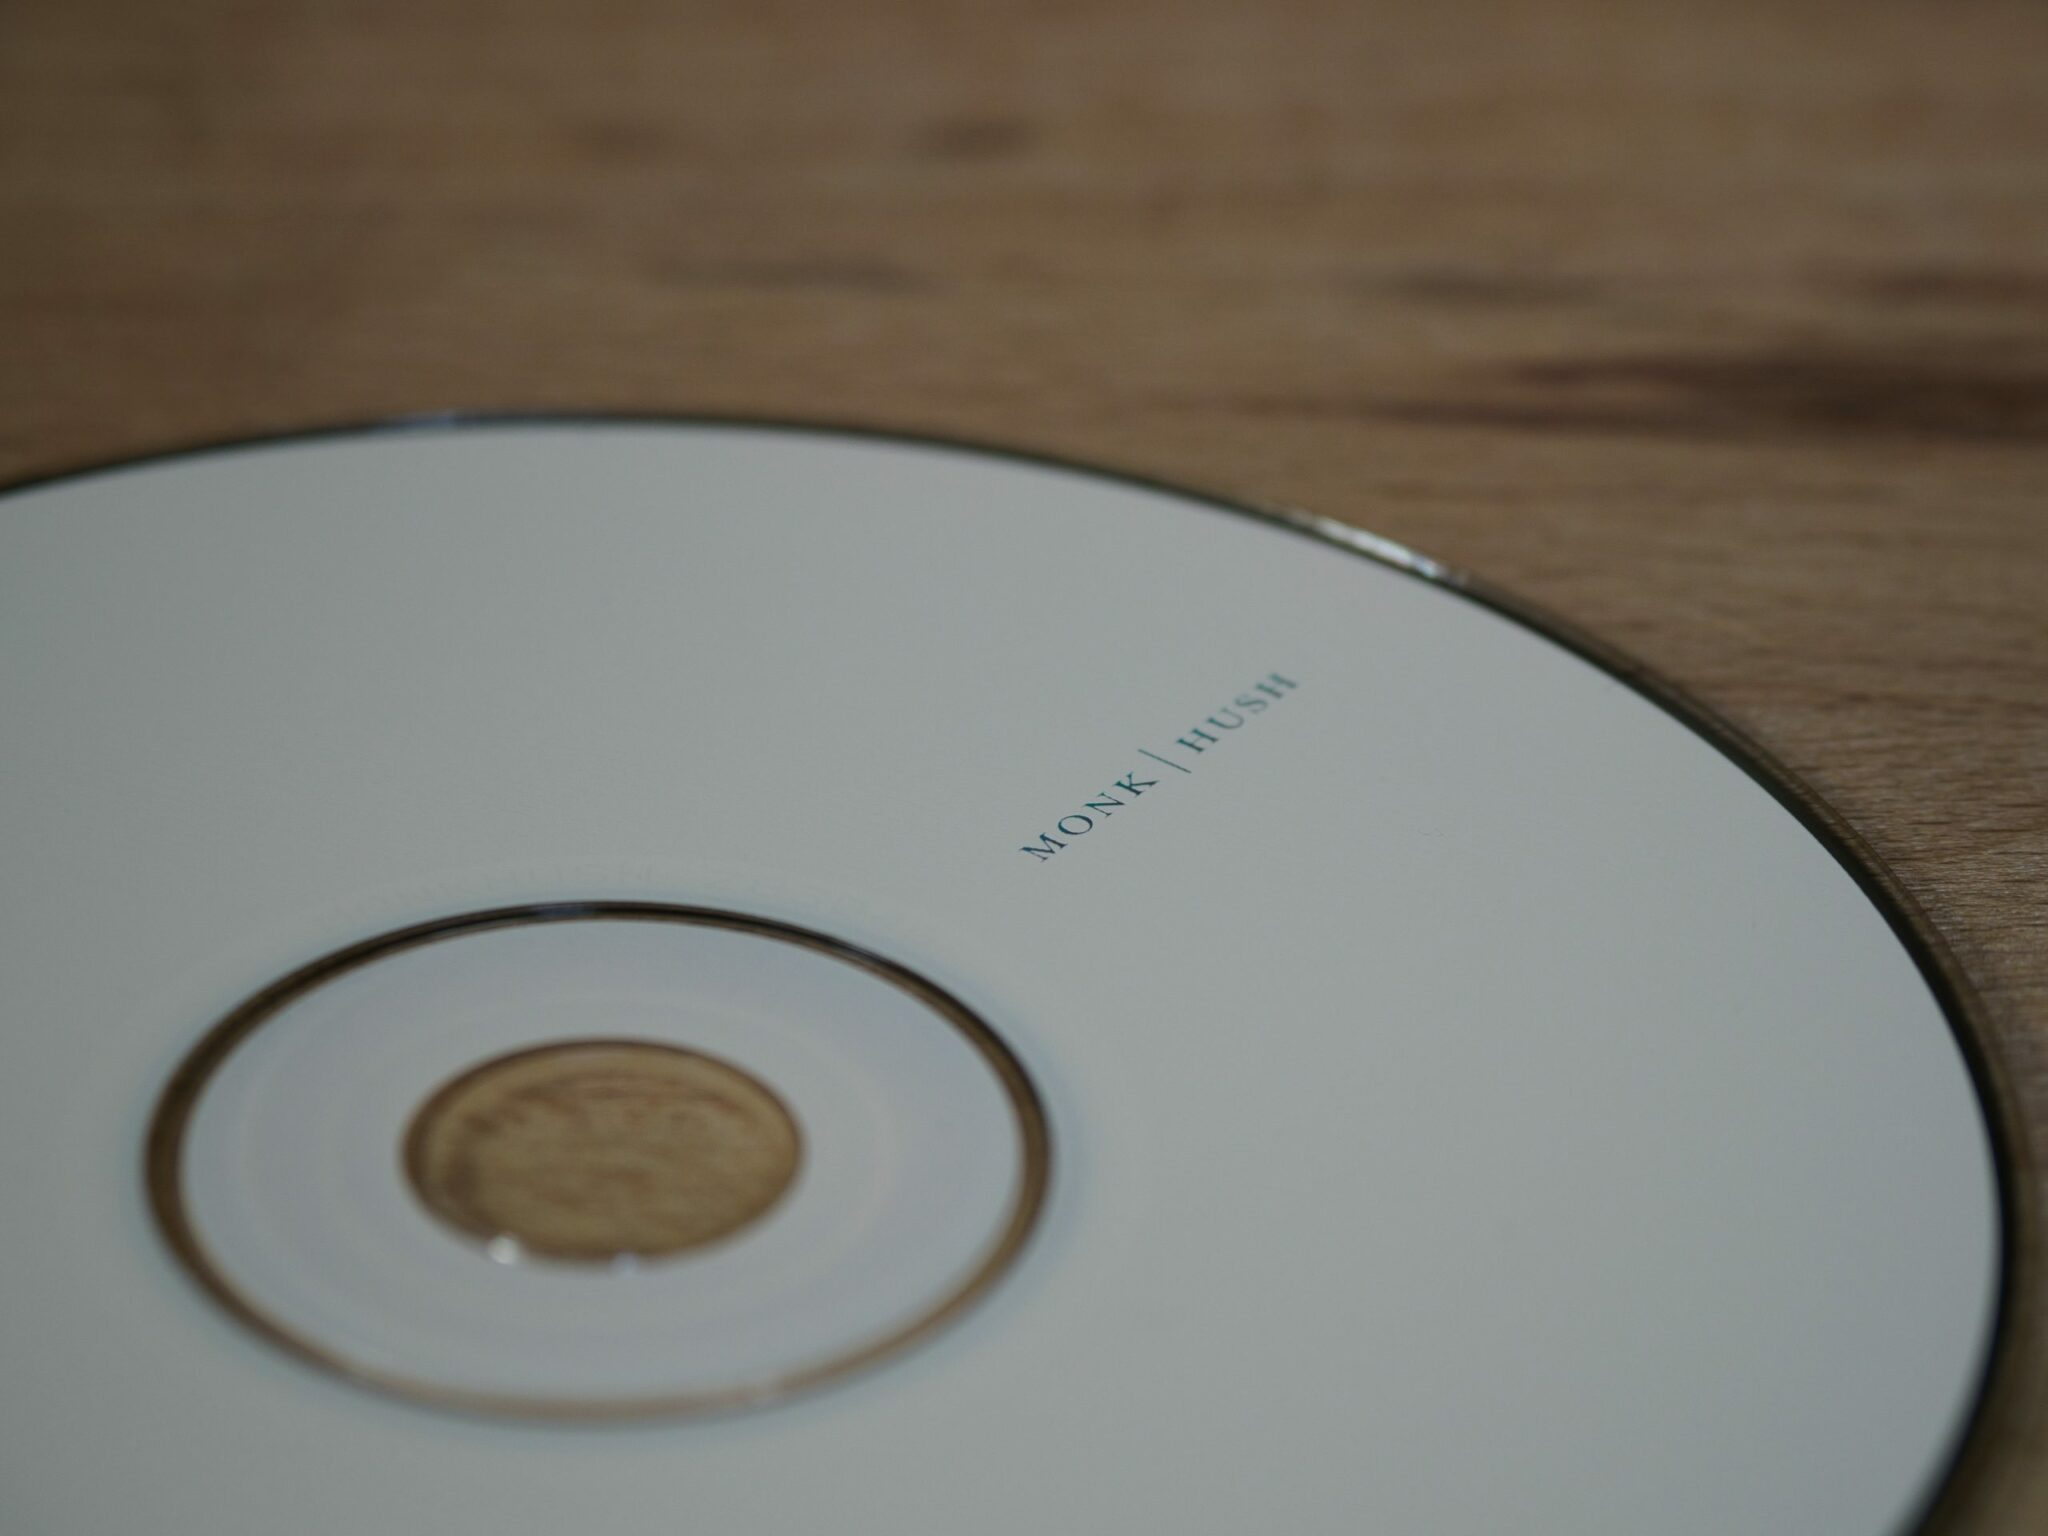 cd-on-table